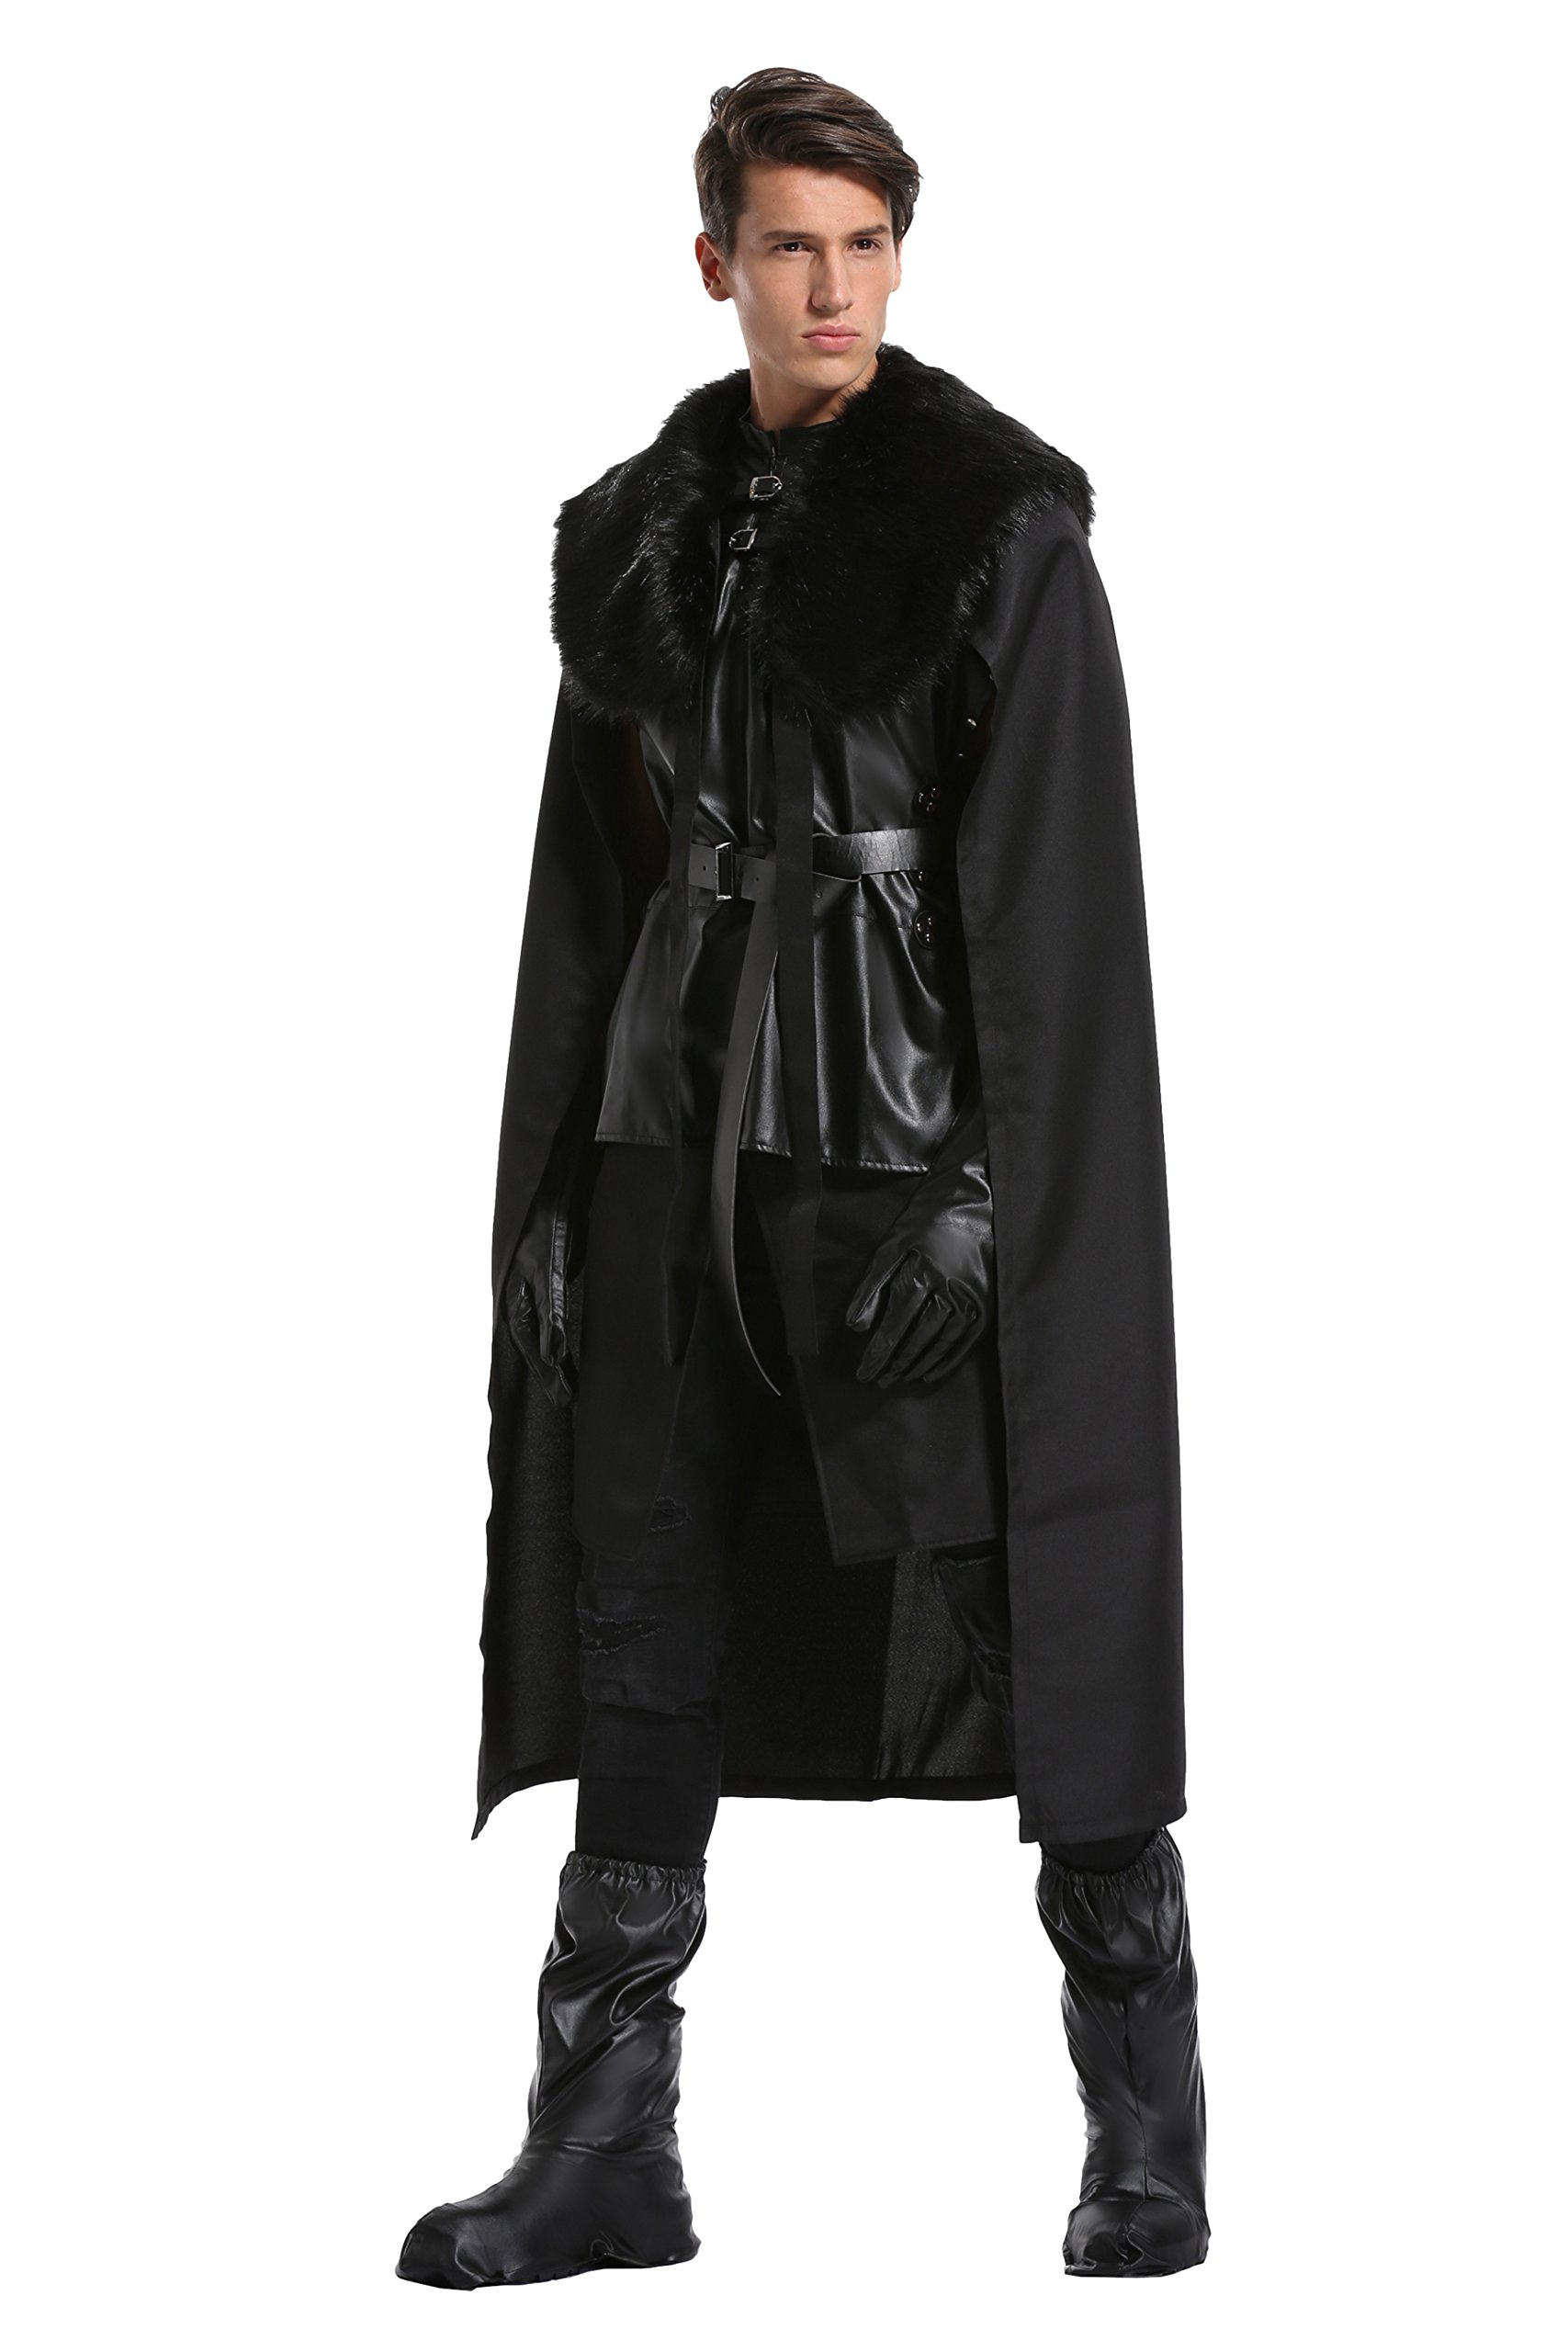 Halloween Costumes for Men and Child, Cosplay Cape Night's Watch Outfit with Gloves and Shoes Cover, Child S by Quintion Anneao